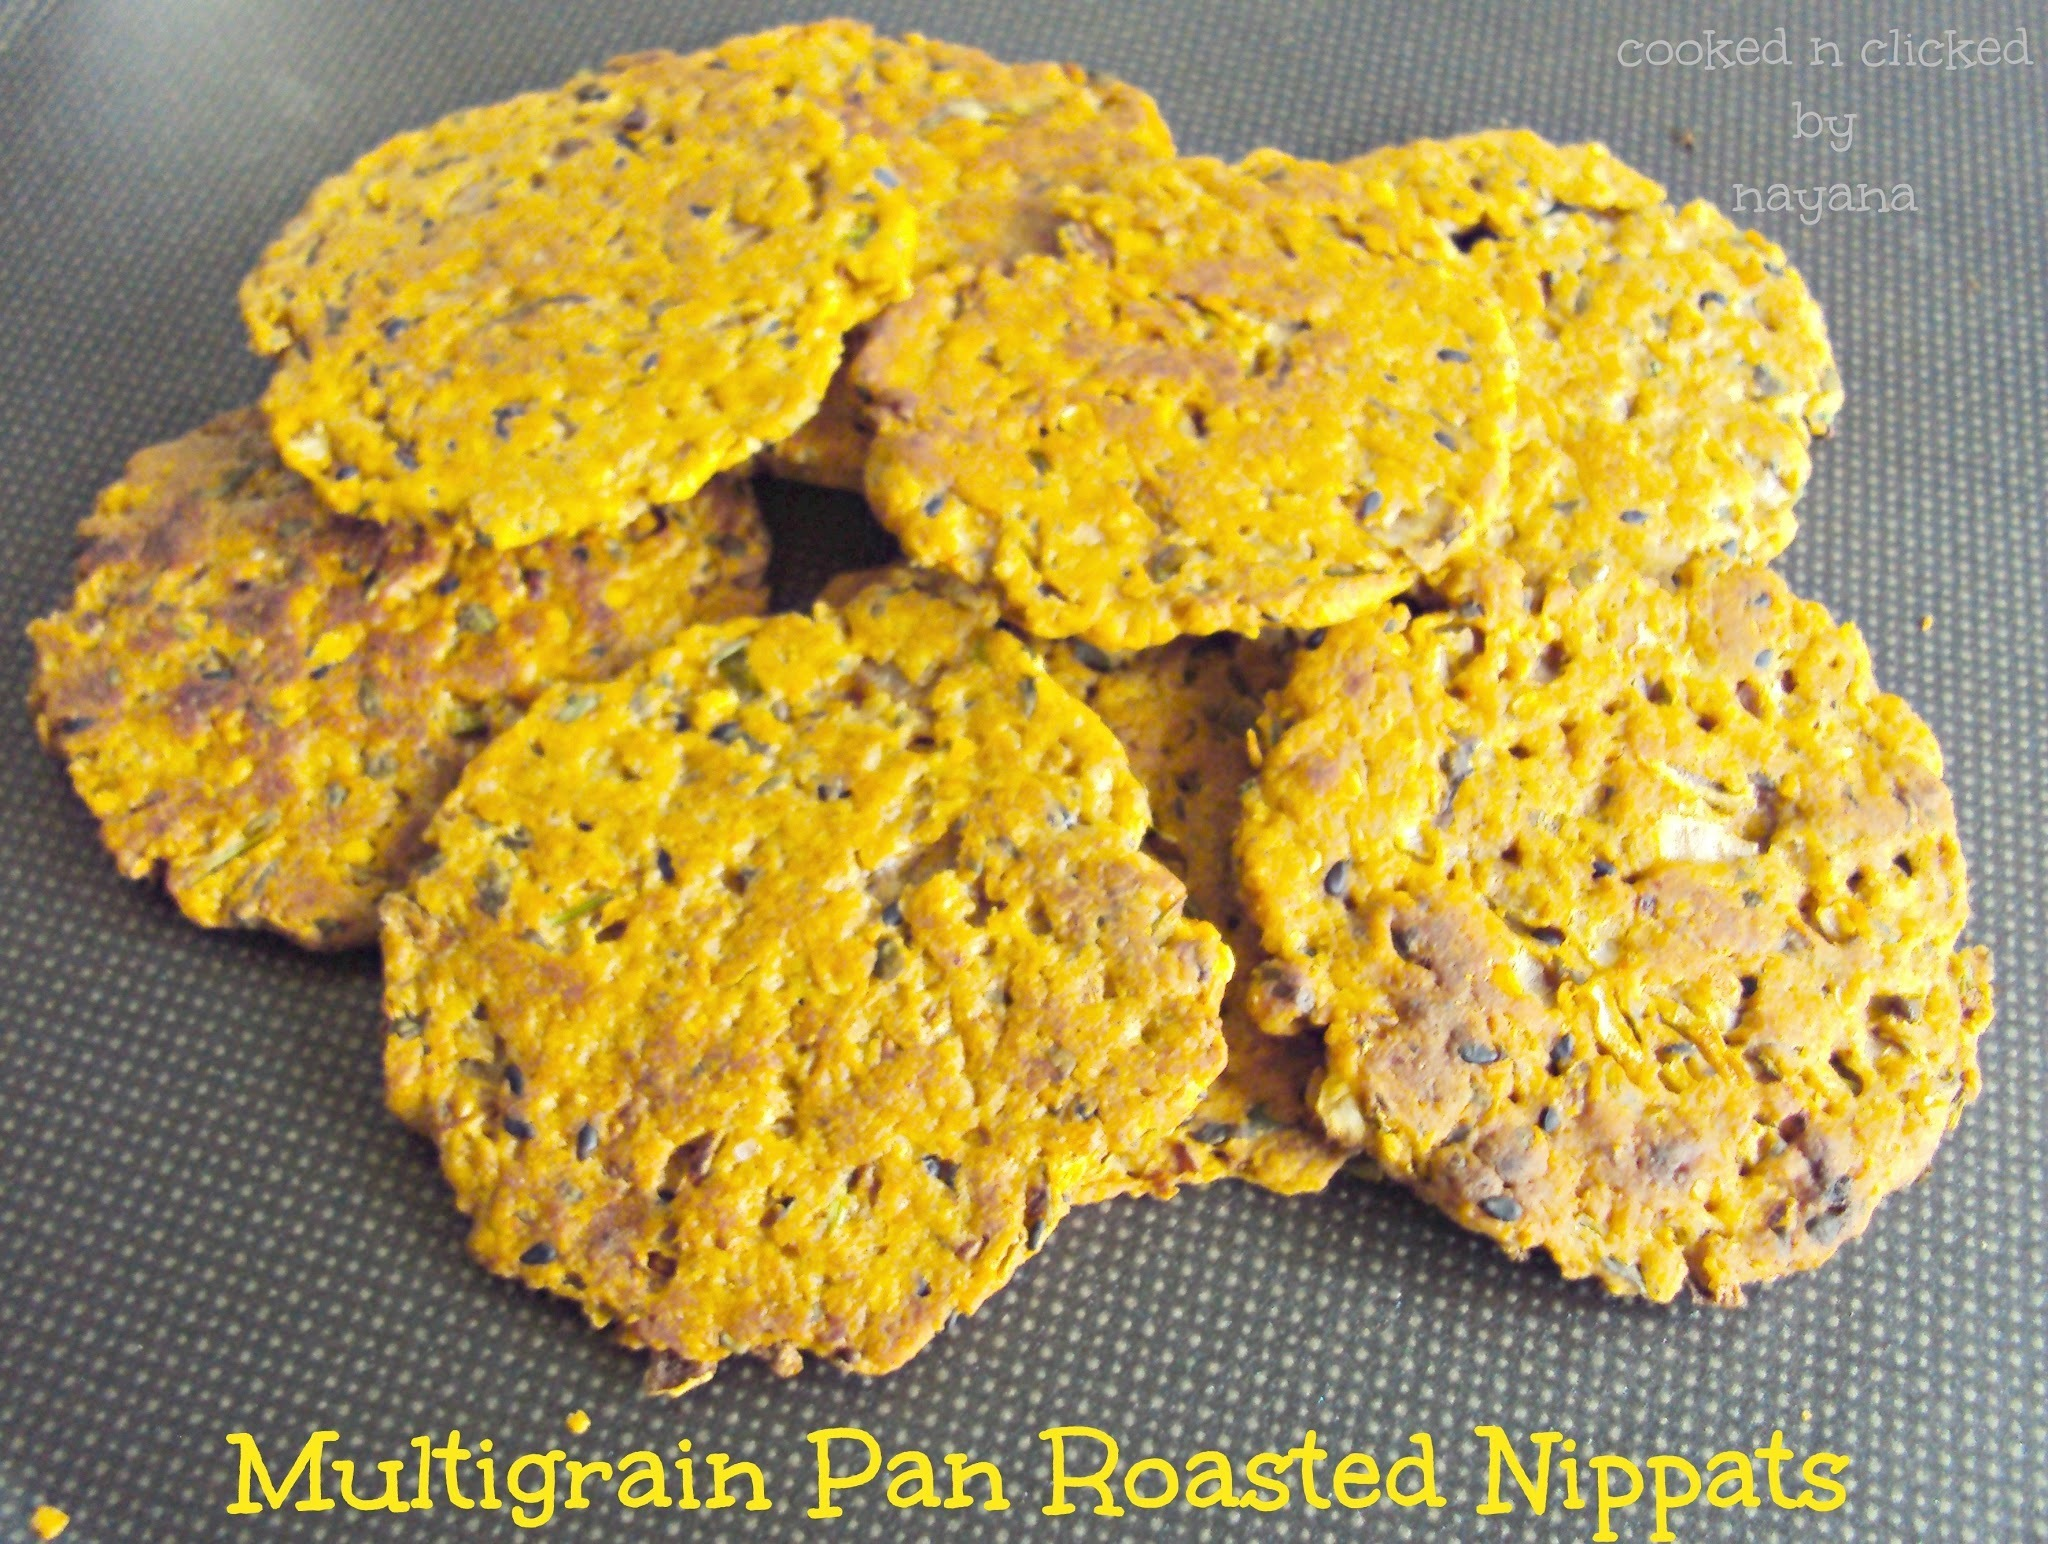 Multigrain Tawa Roasted Nippats